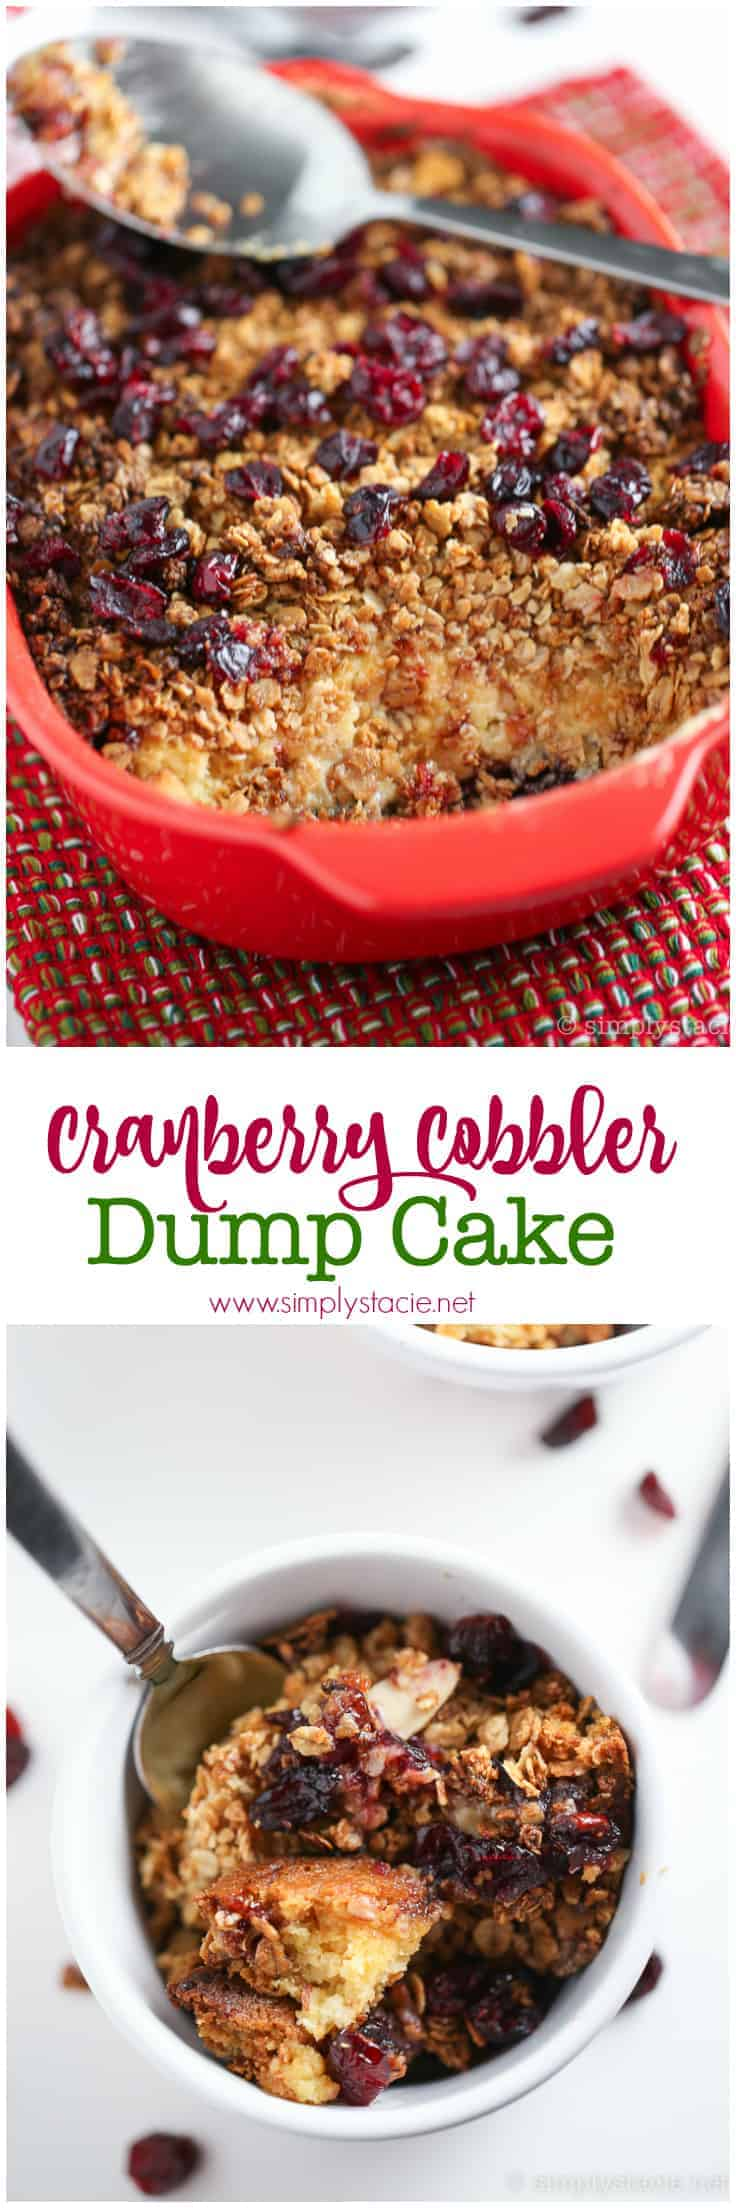 Cake Mix Hack With Cranberry Sauce